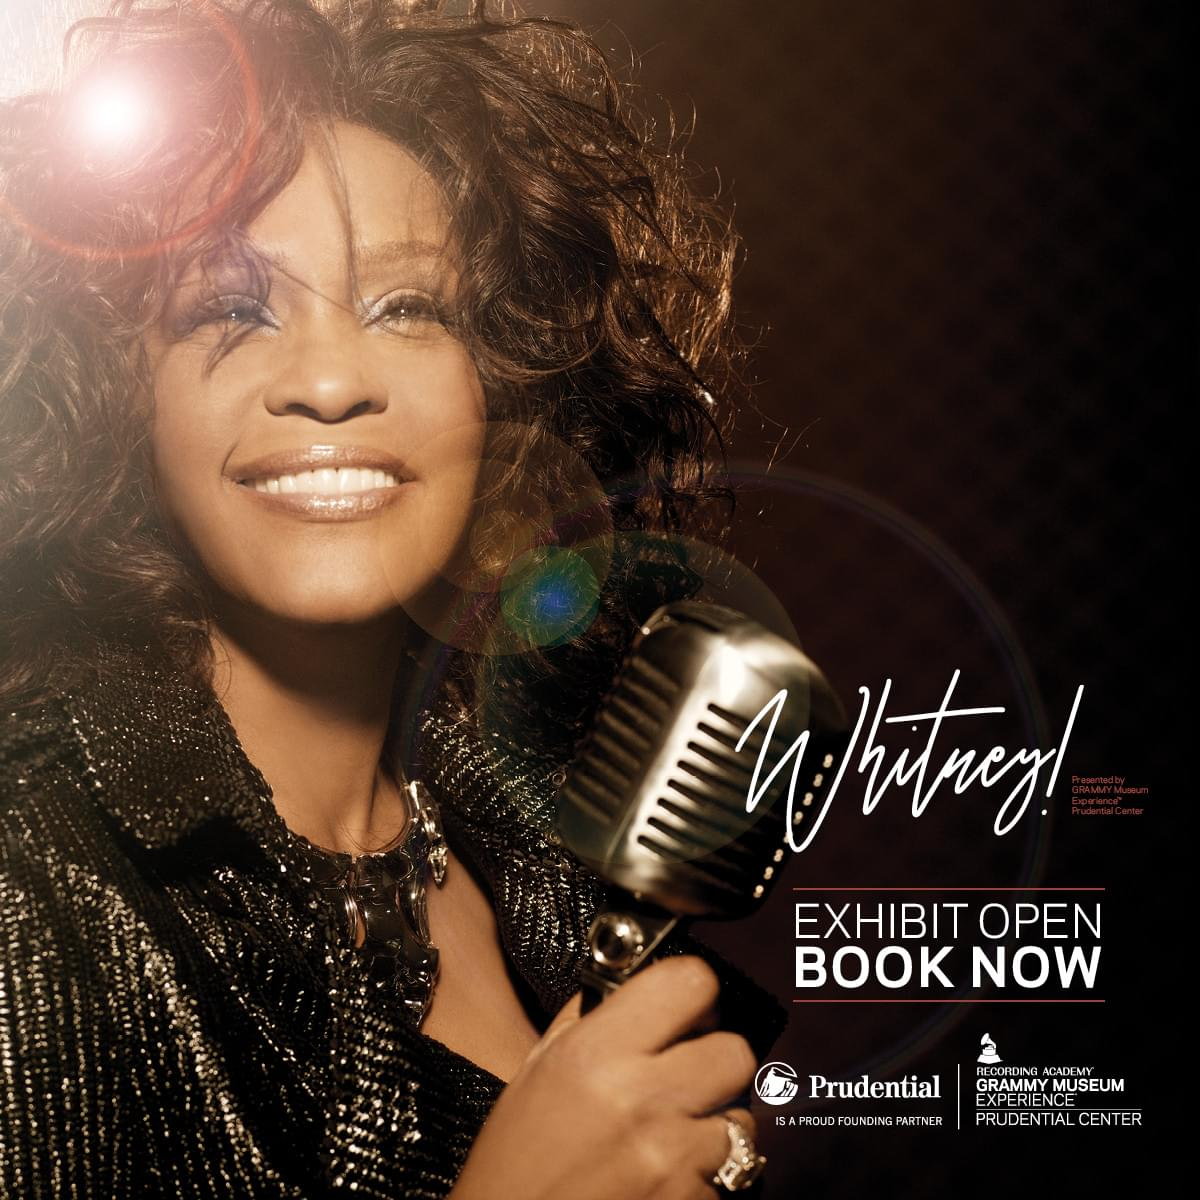 Win Tickets for Whitney! Presented by the Grammy Museum Experience!